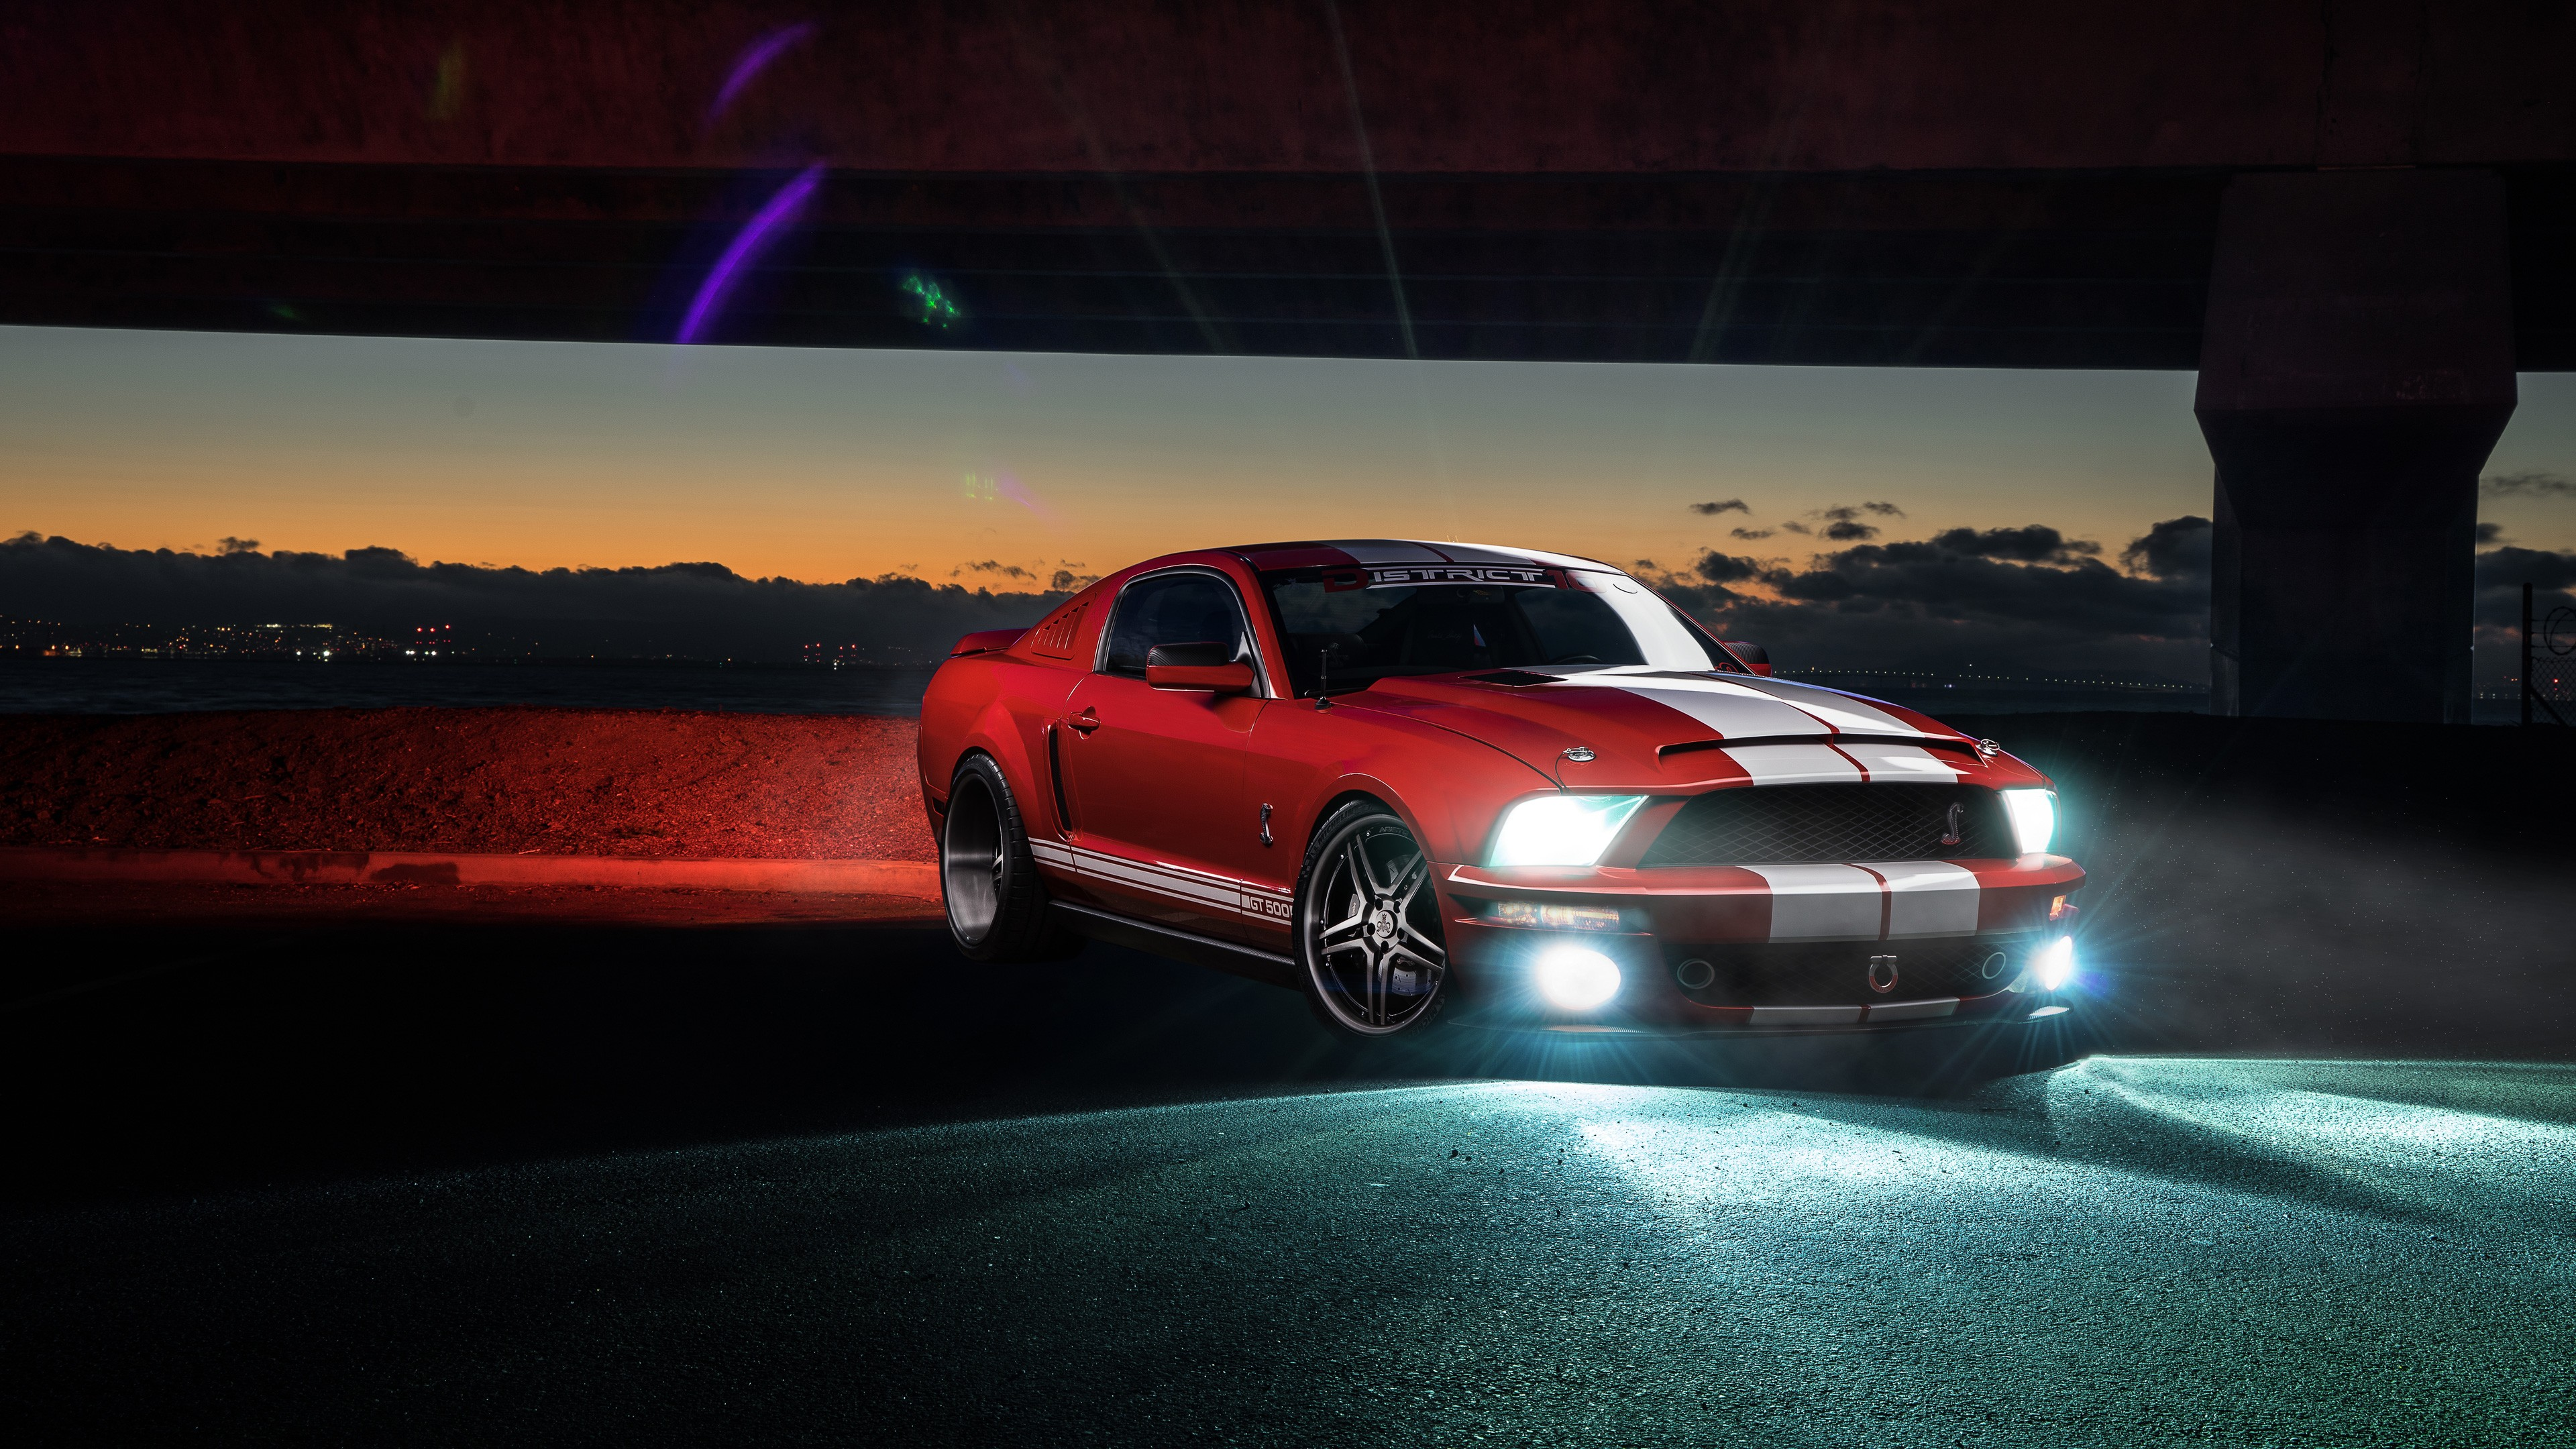 Ford Mustang Shelby GT500 Wallpaper | HD Car Wallpapers | ID #6526